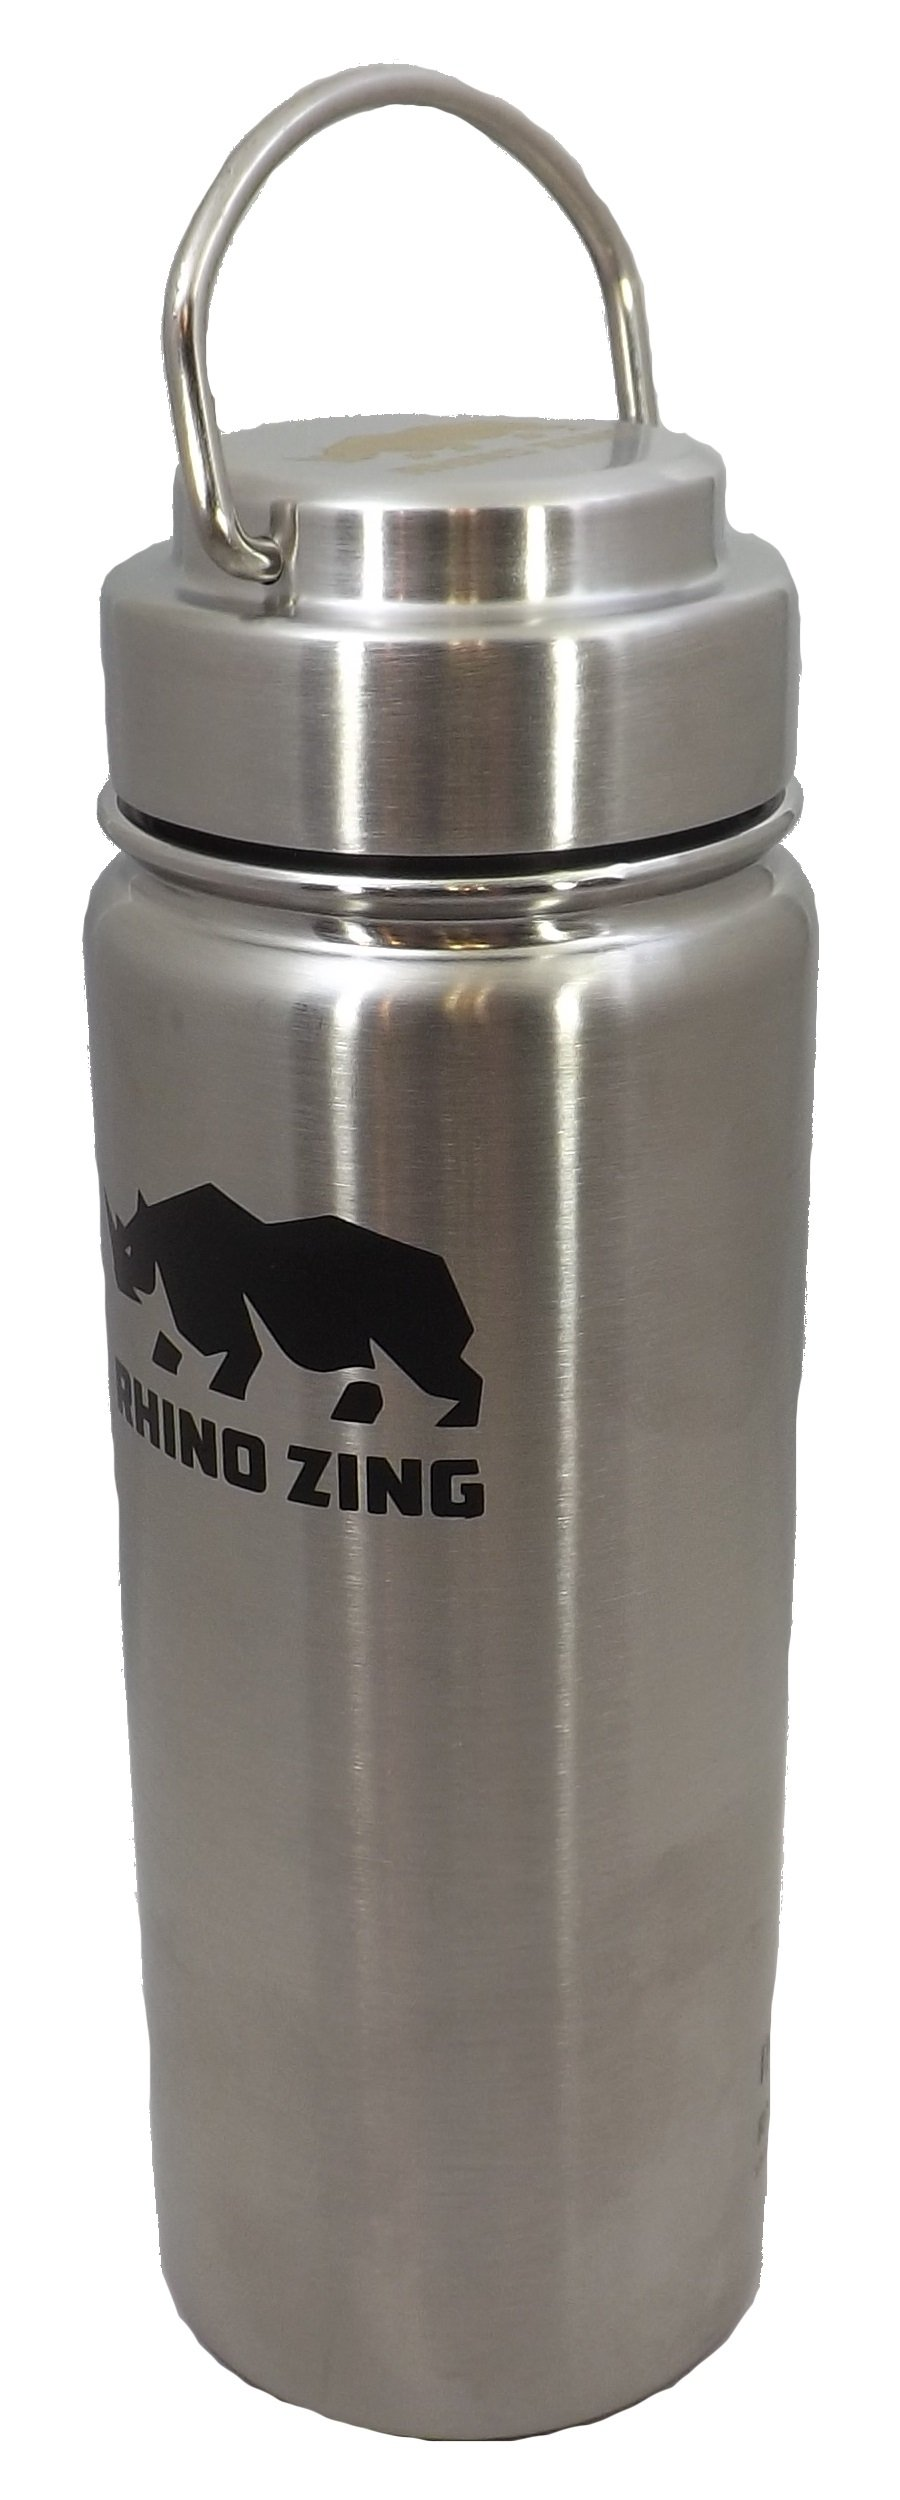 Rhino Zing 18-Ounce Beer Growler Stainless Steel Water Bottle with Stainless Steel Lid. Insulated, Wide Mouth by Rhino Zing (Image #6)